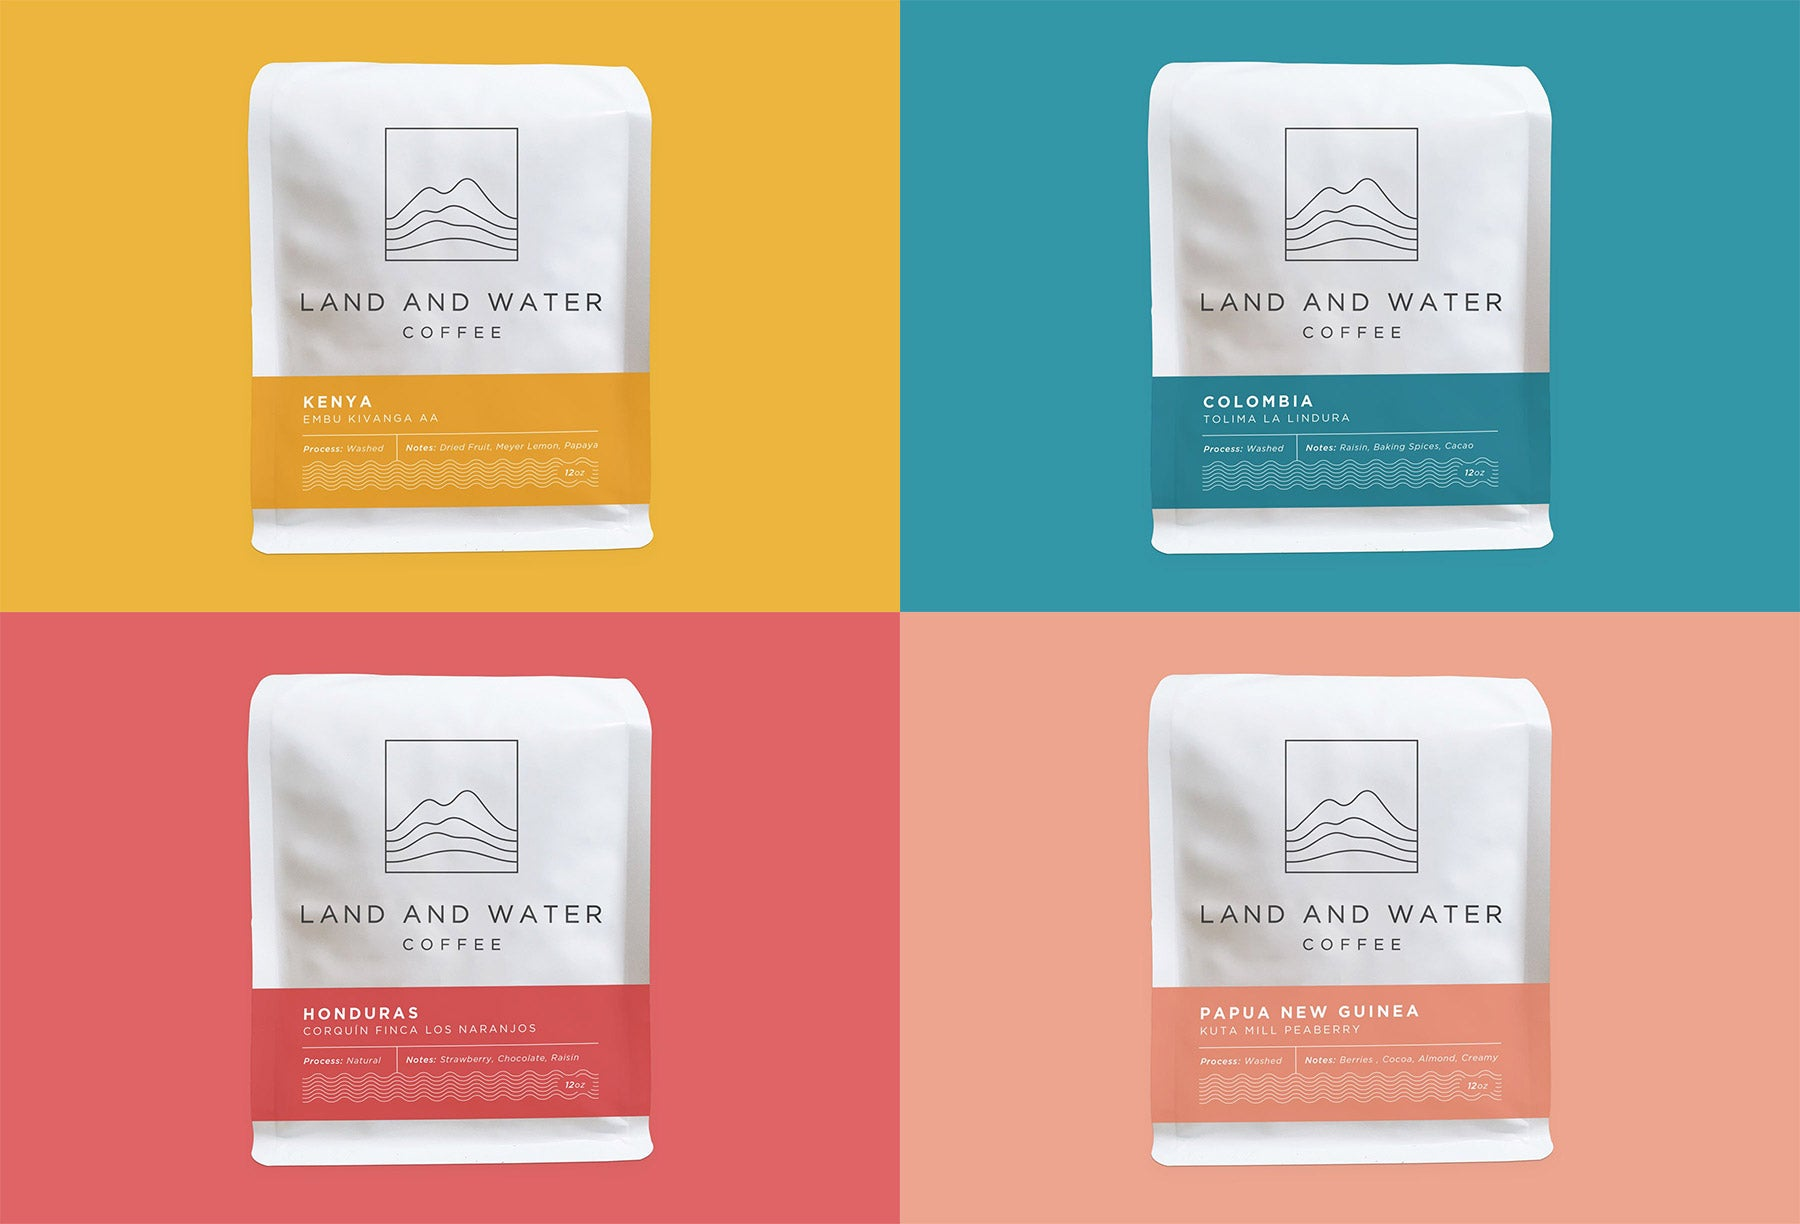 4 Land and Water Coffee bags representing coffee from each origin